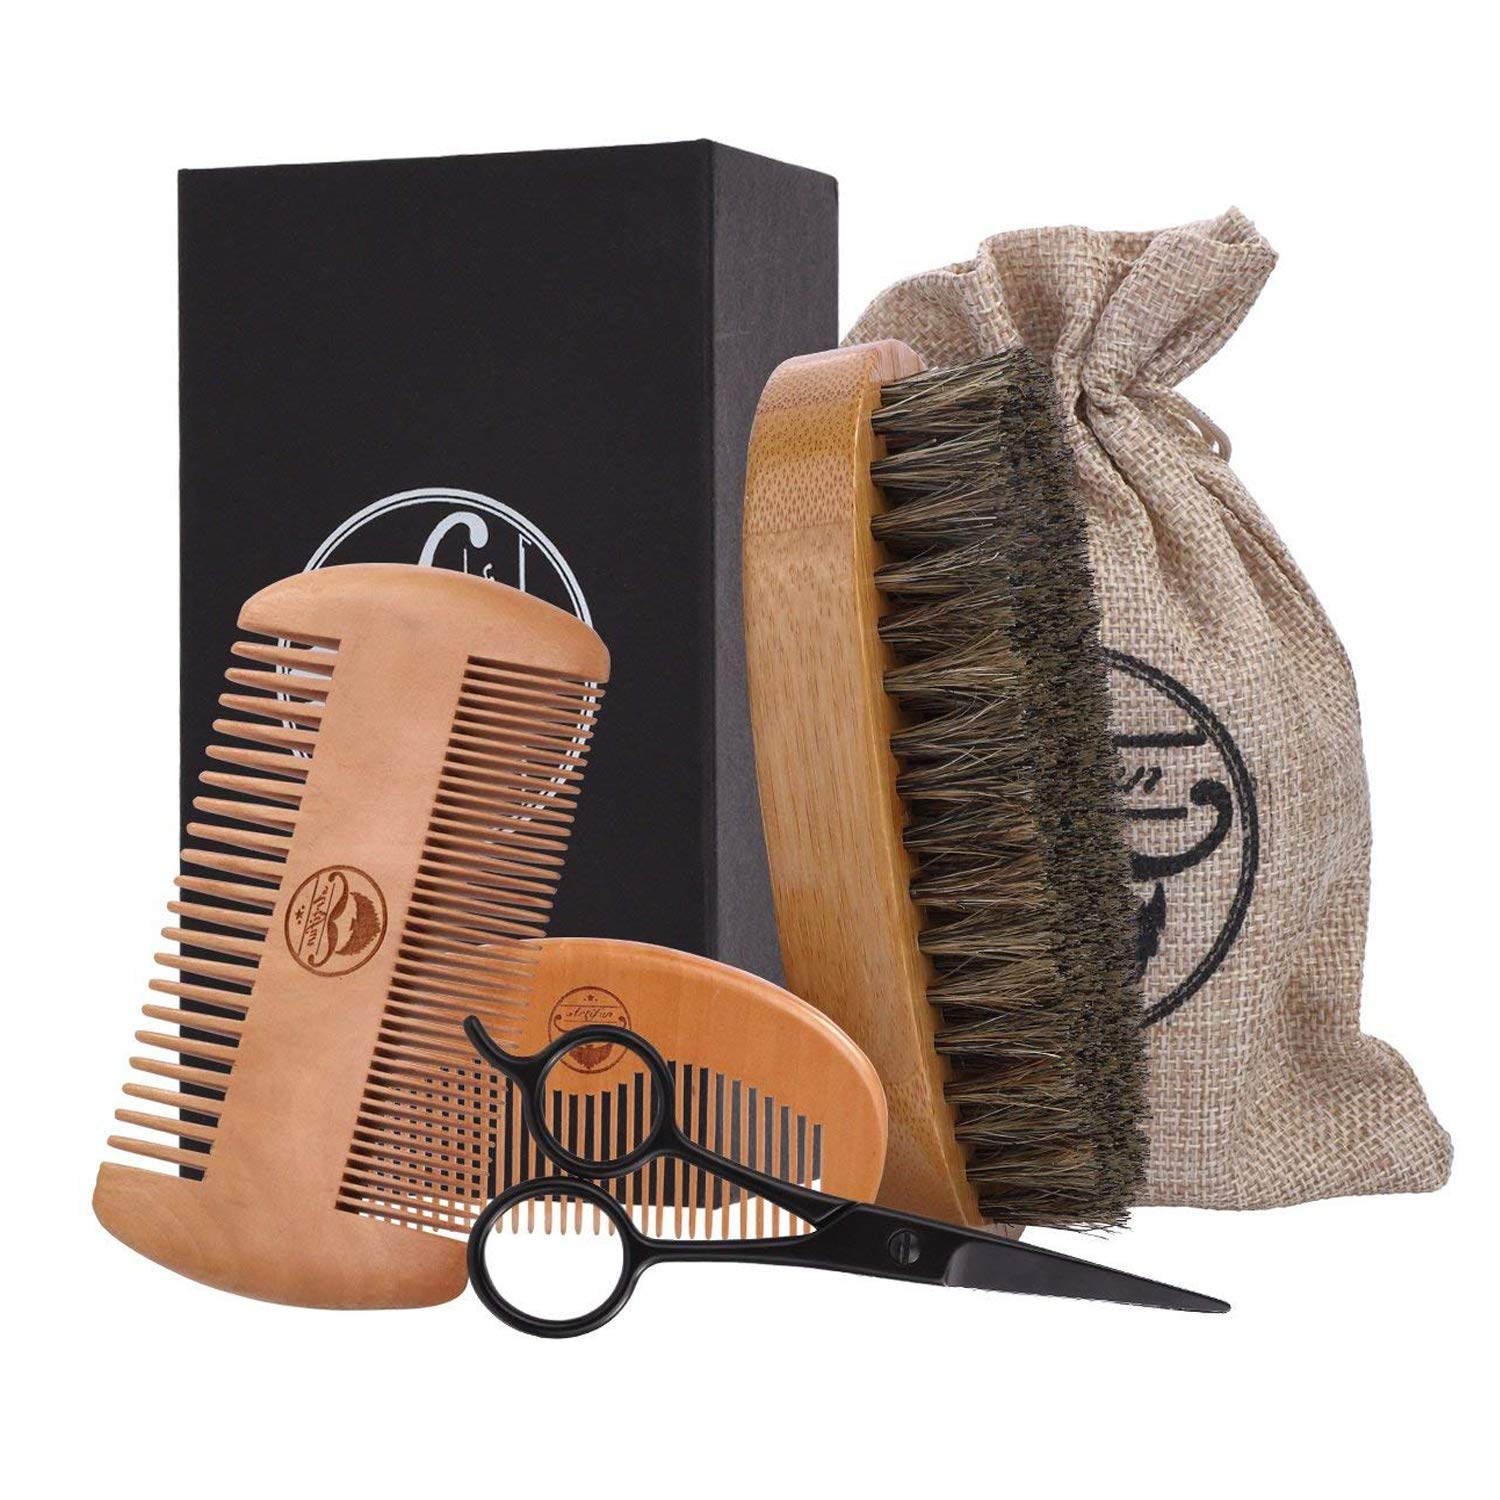 ARTIFUN Beard Grooming Kit for Styling & Growth, 100% Pure Boar Bristle Brush & Sandalwood Comb & Stainless Beard Nose Eyebrow Scissors & Storage Bag, Trimming Grooming Set for Men Care, Ideal Gift